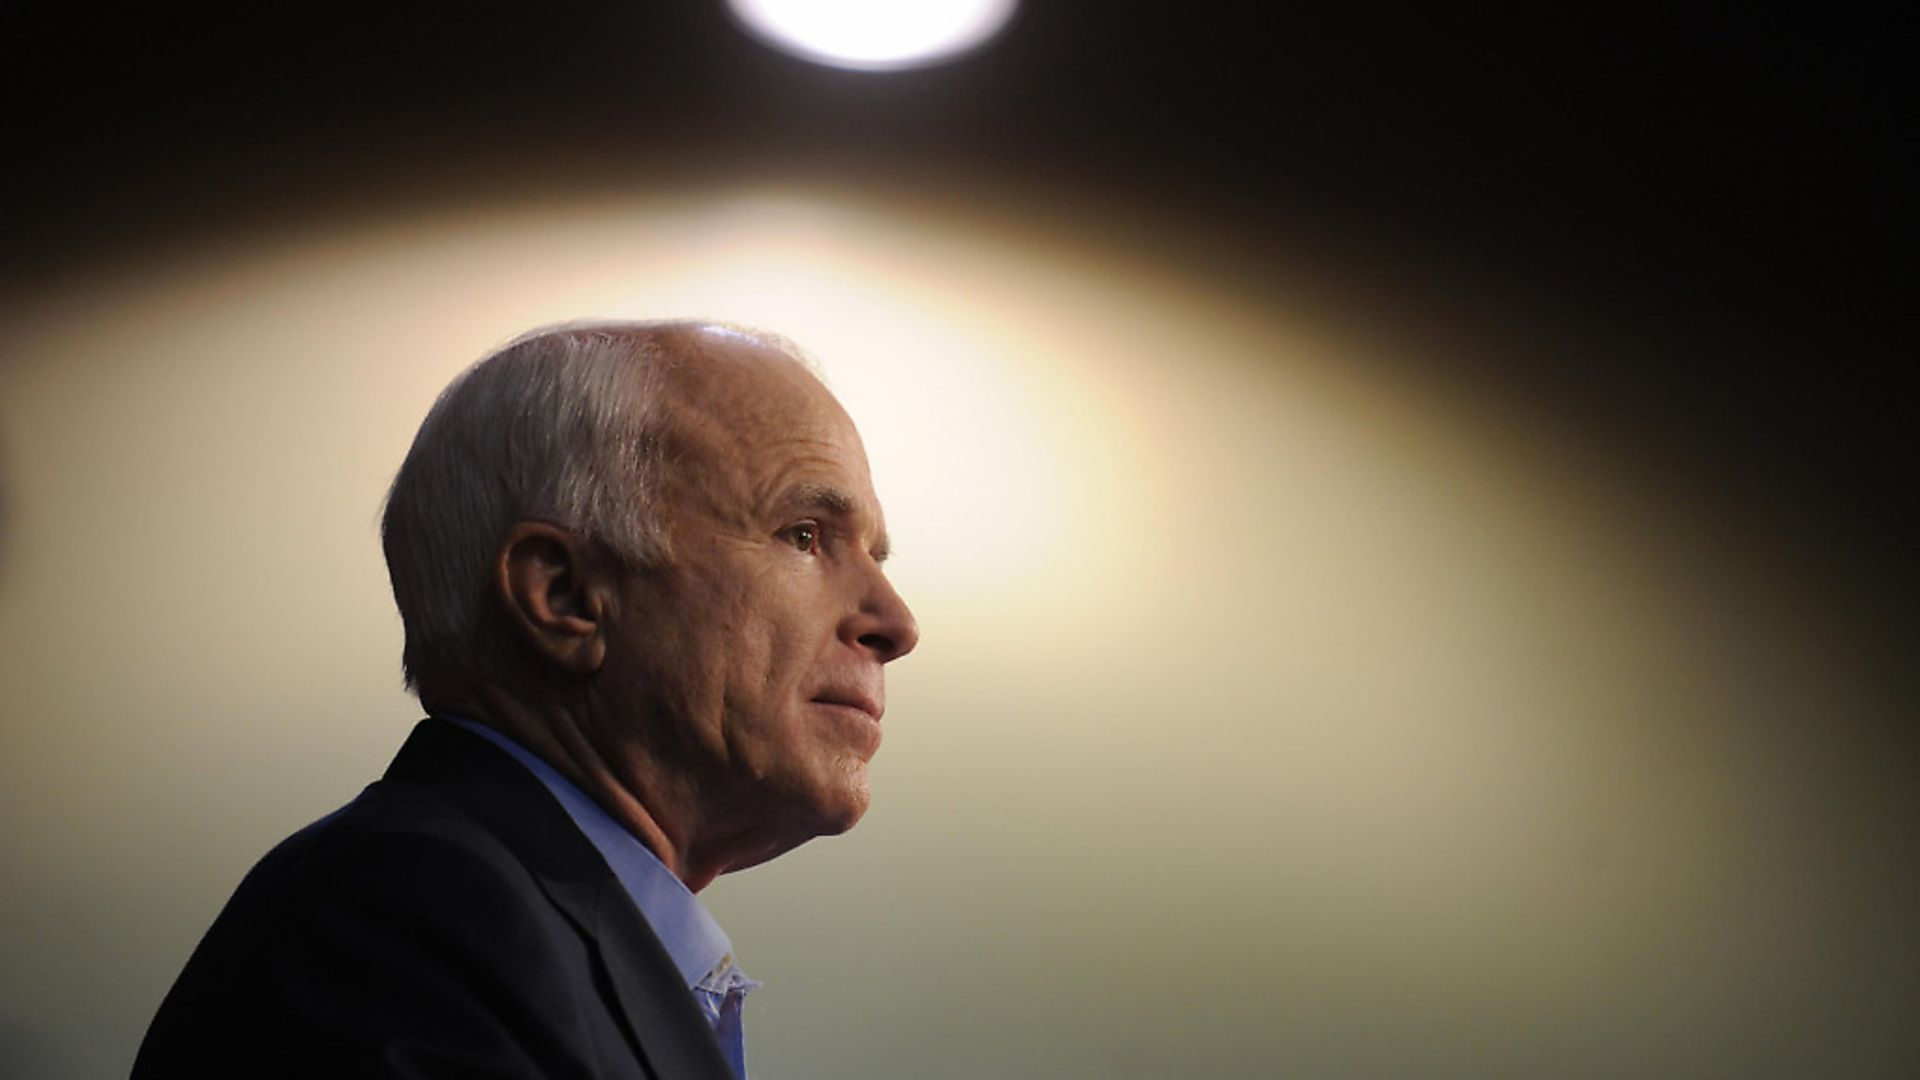 """Republican presidential candidate John McCain pauses during his speech at a """"Joe the Plumber"""" campaign rally in Sarasota, Florida on October 23, 2008.  McCain is on a six-stop, one-day """"Joe the Plumber"""" bus tour across central Florida to meet with small business owners.   AFP PHOTO Robyn BECK (Photo credit should read ROBYN BECK/AFP/Getty Images) - Credit: AFP/Getty Images"""